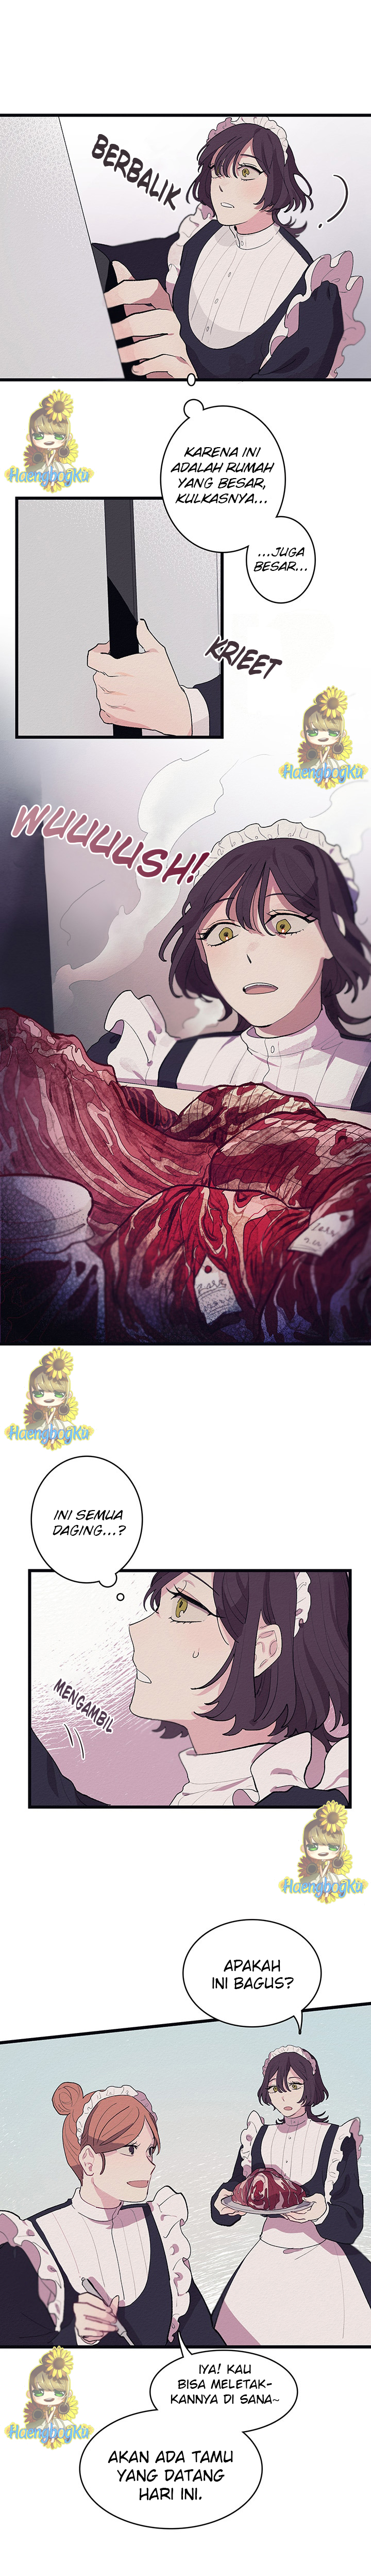 Spoiler Manhwa A Lady's Table 1